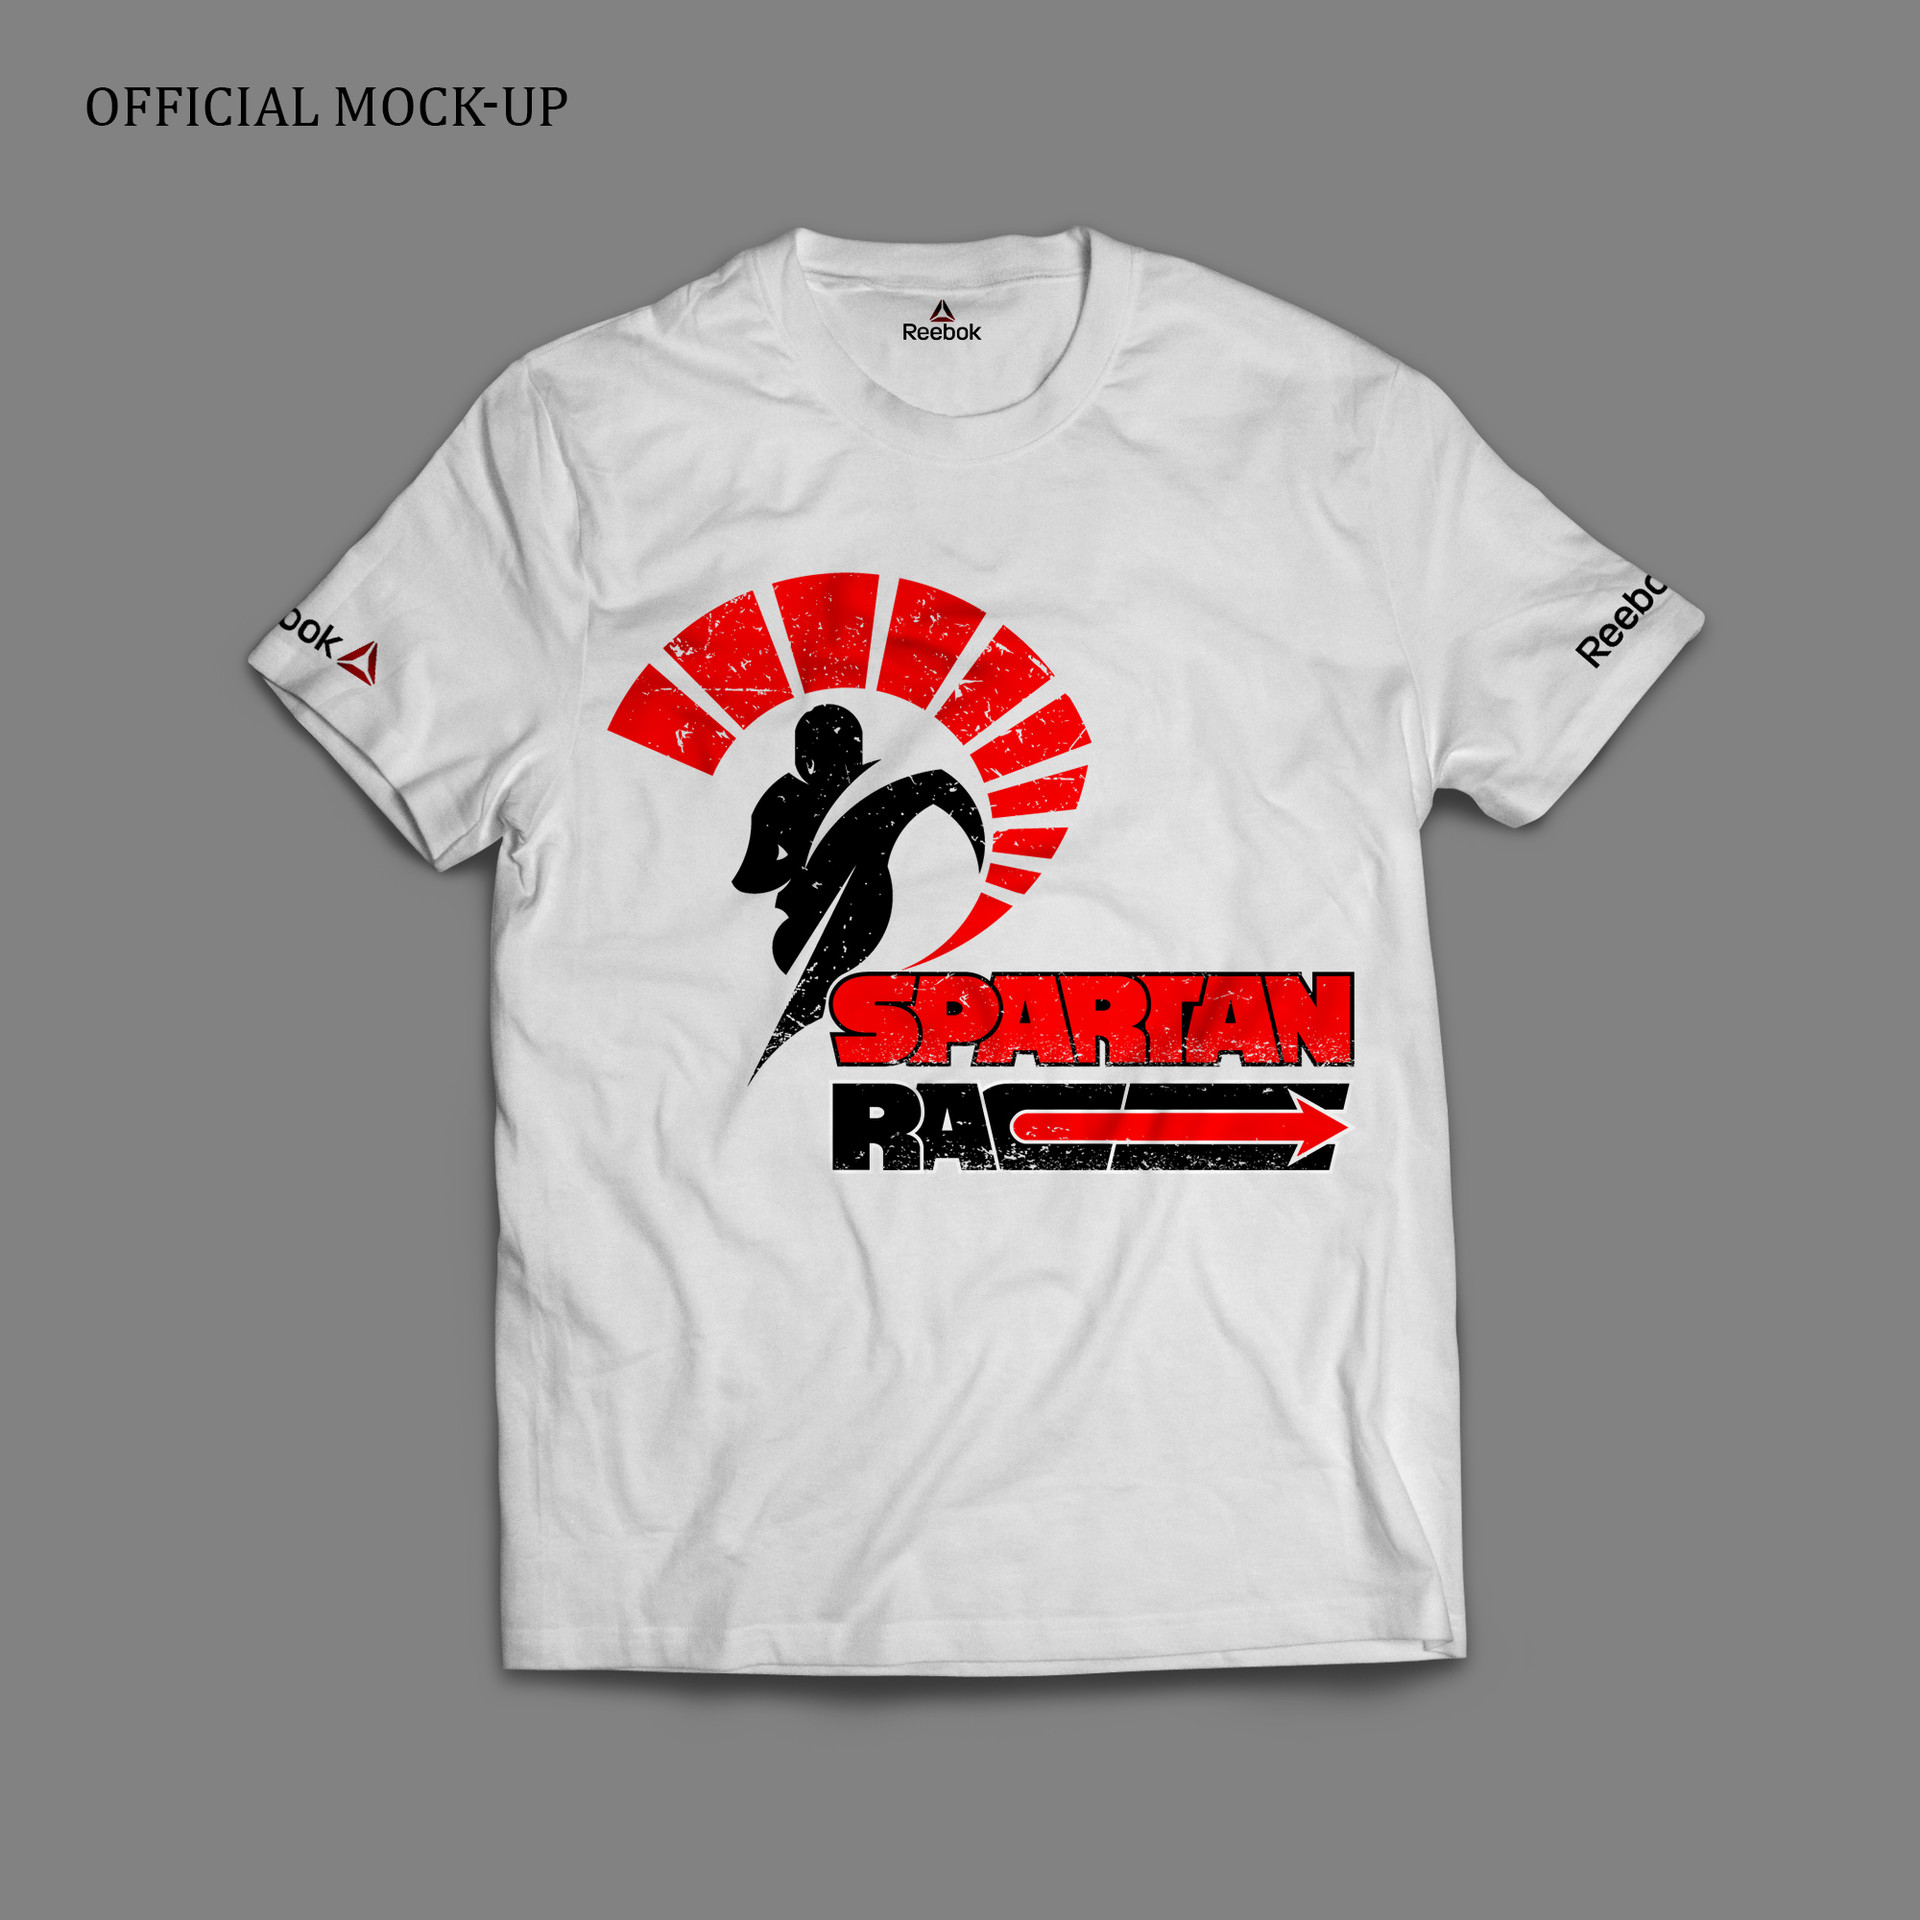 Richard t white jr spartanrace tshirtmockup official